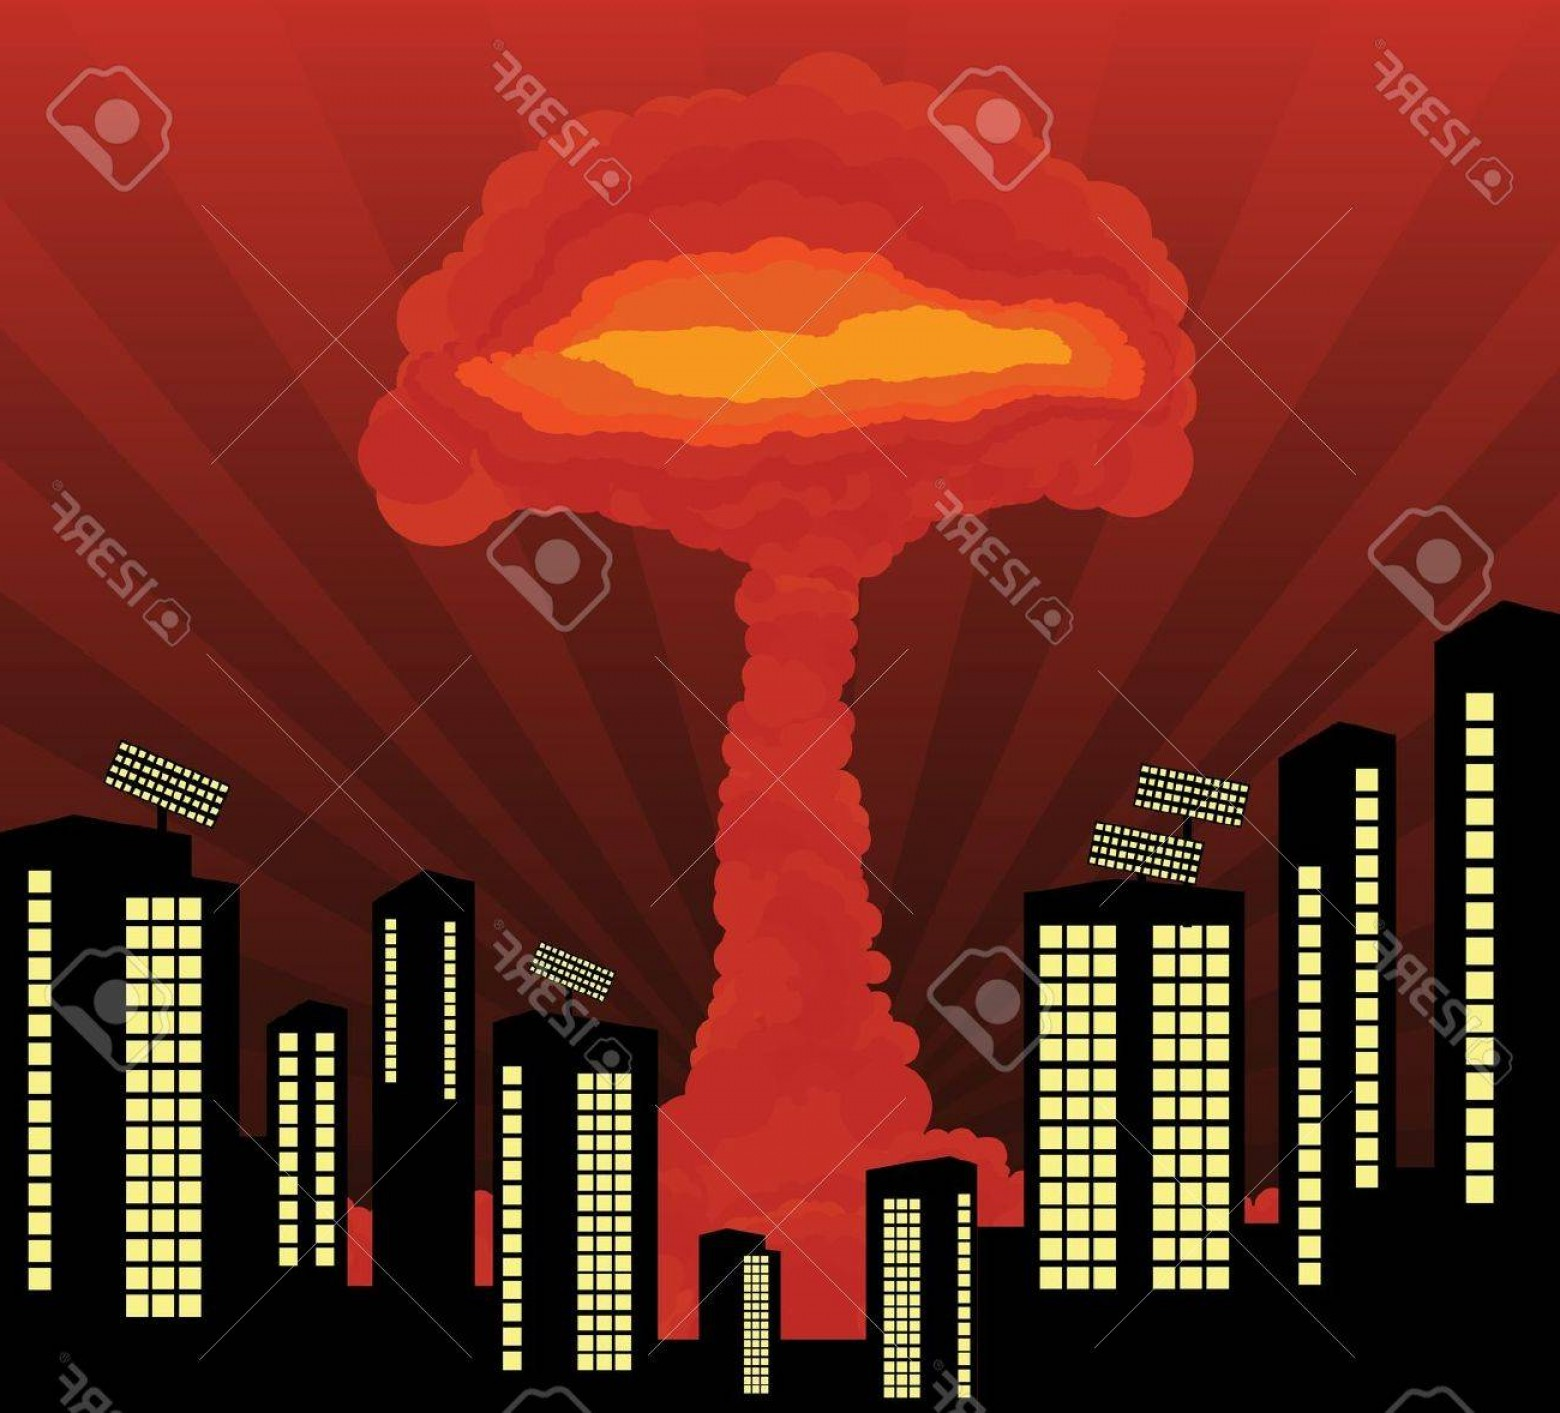 Atomic Vector Coud: Photoatomic Explosion Cloud Formed Mushroom In City Center Background